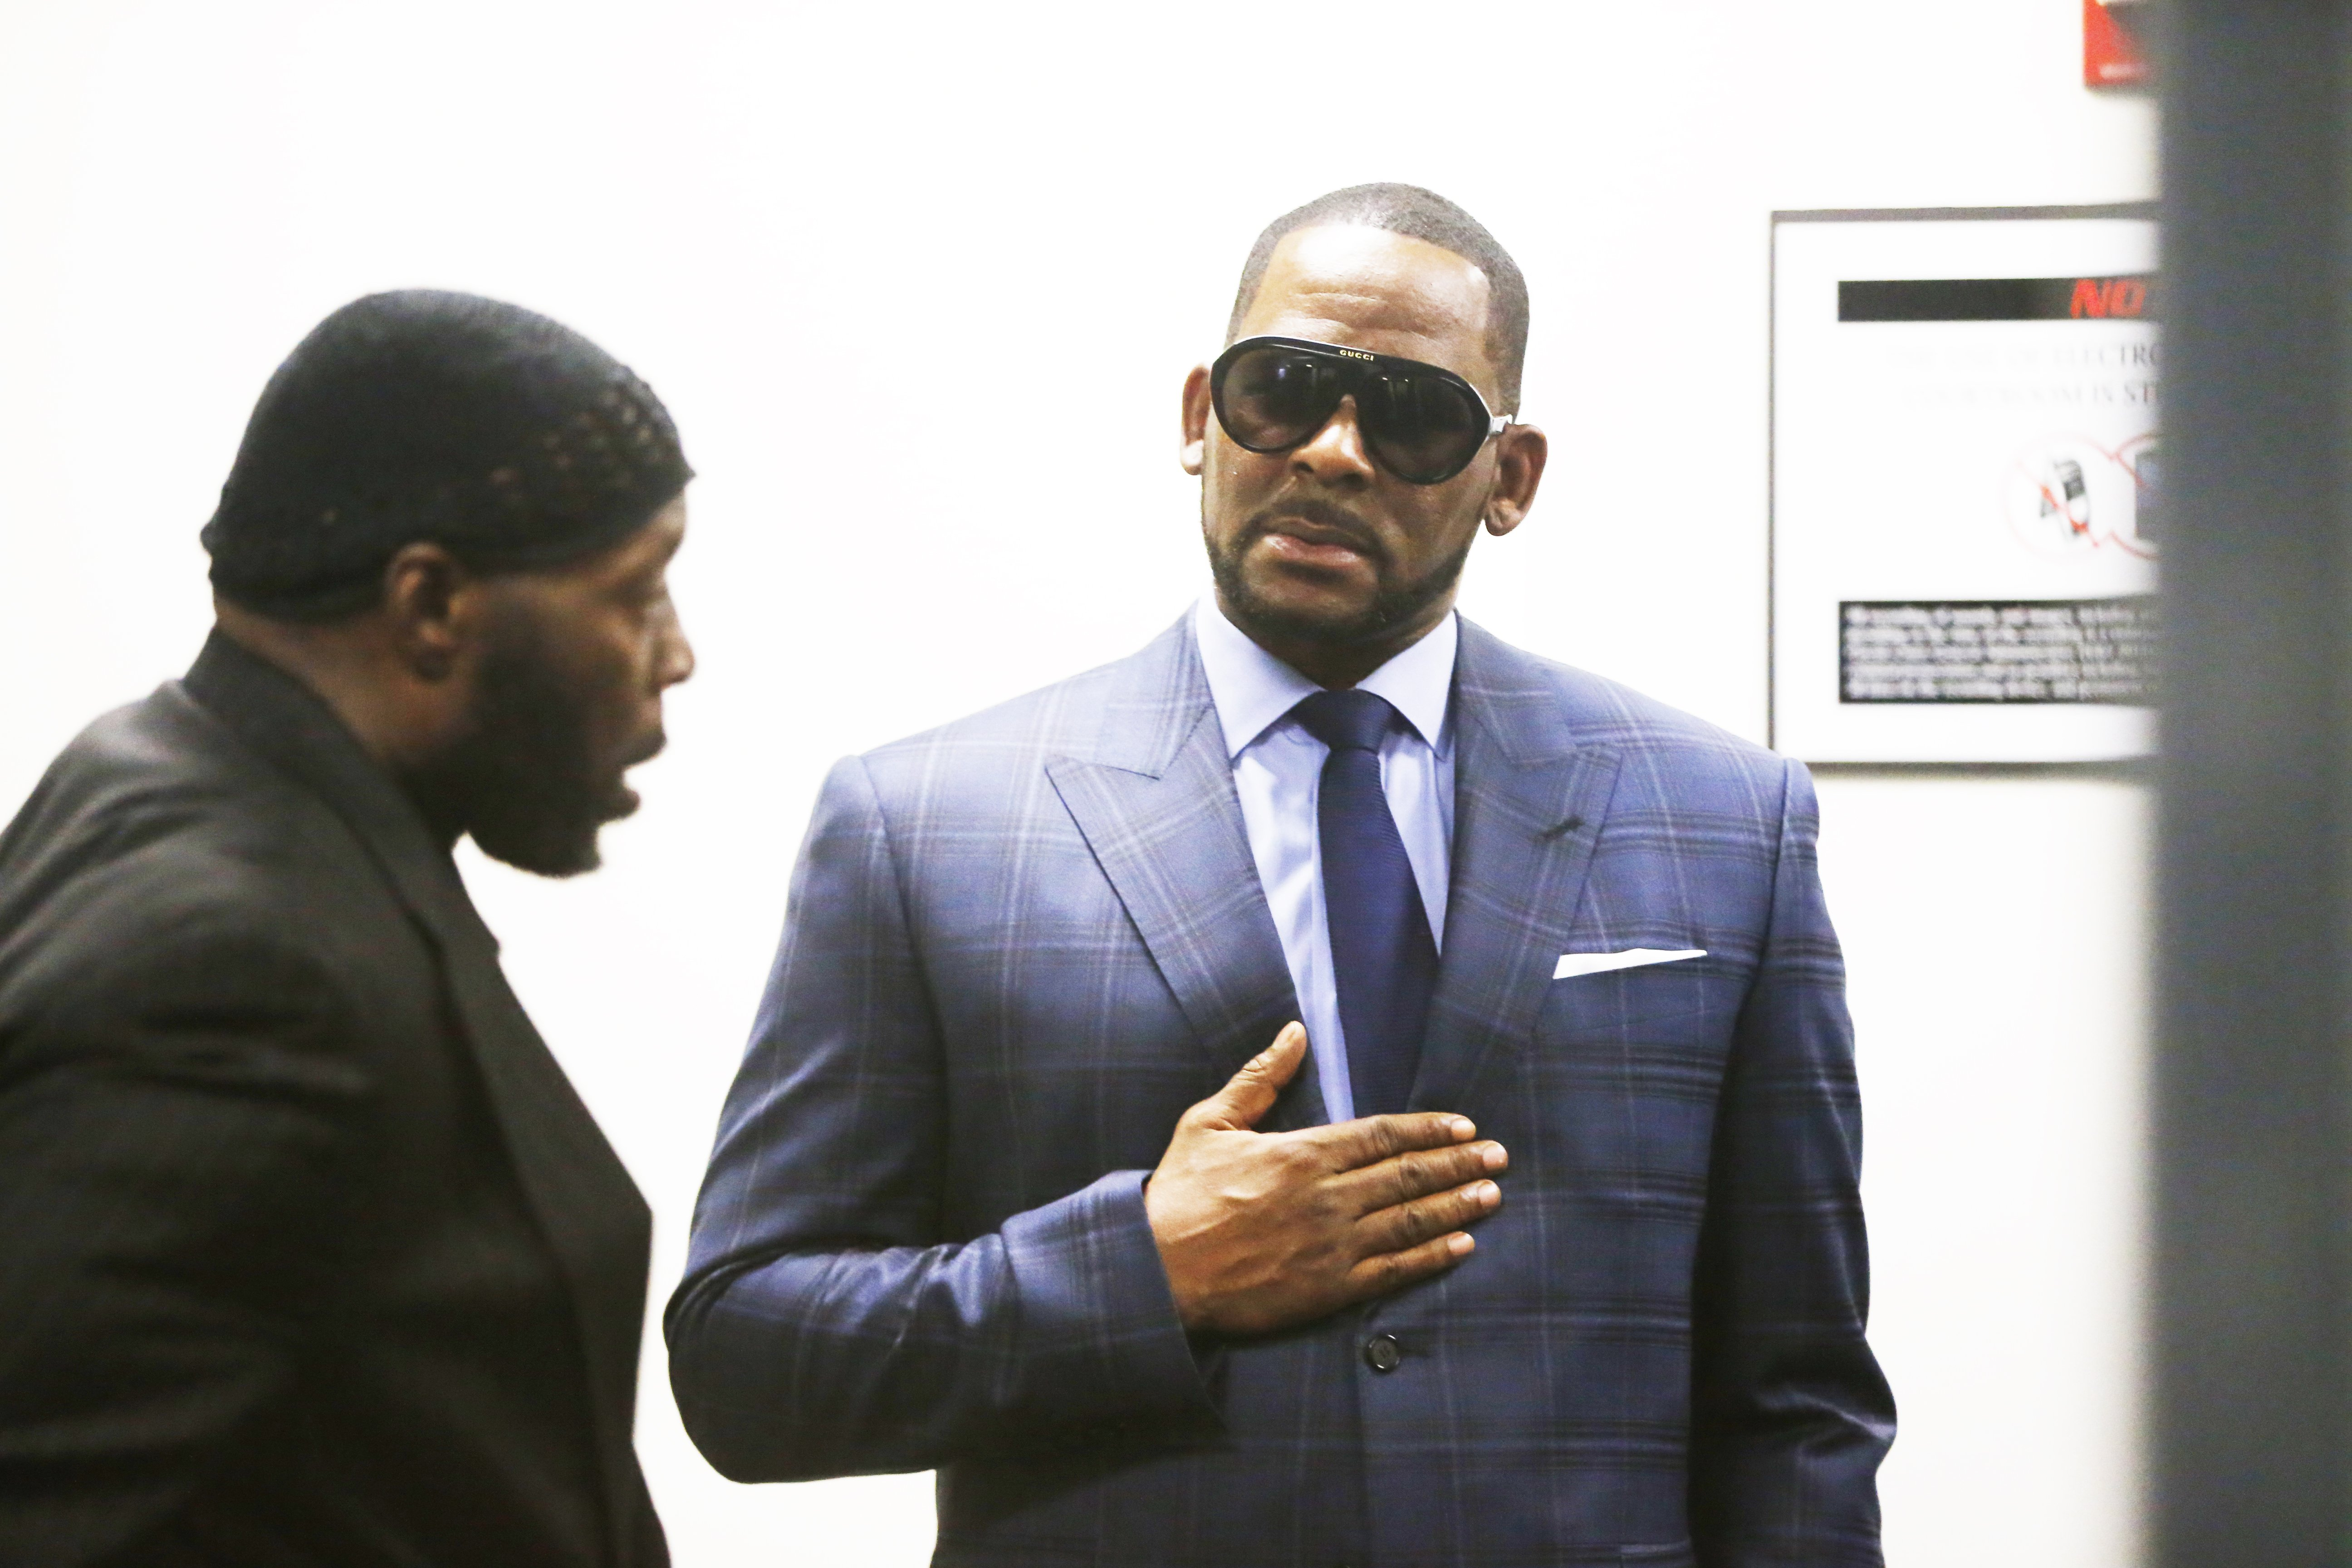 R. Kelly at the Daley Center for a child support hearing, on March 6, 2019, Chicago, Illinois. | Source: GettyImages/Global Images of Ukraine